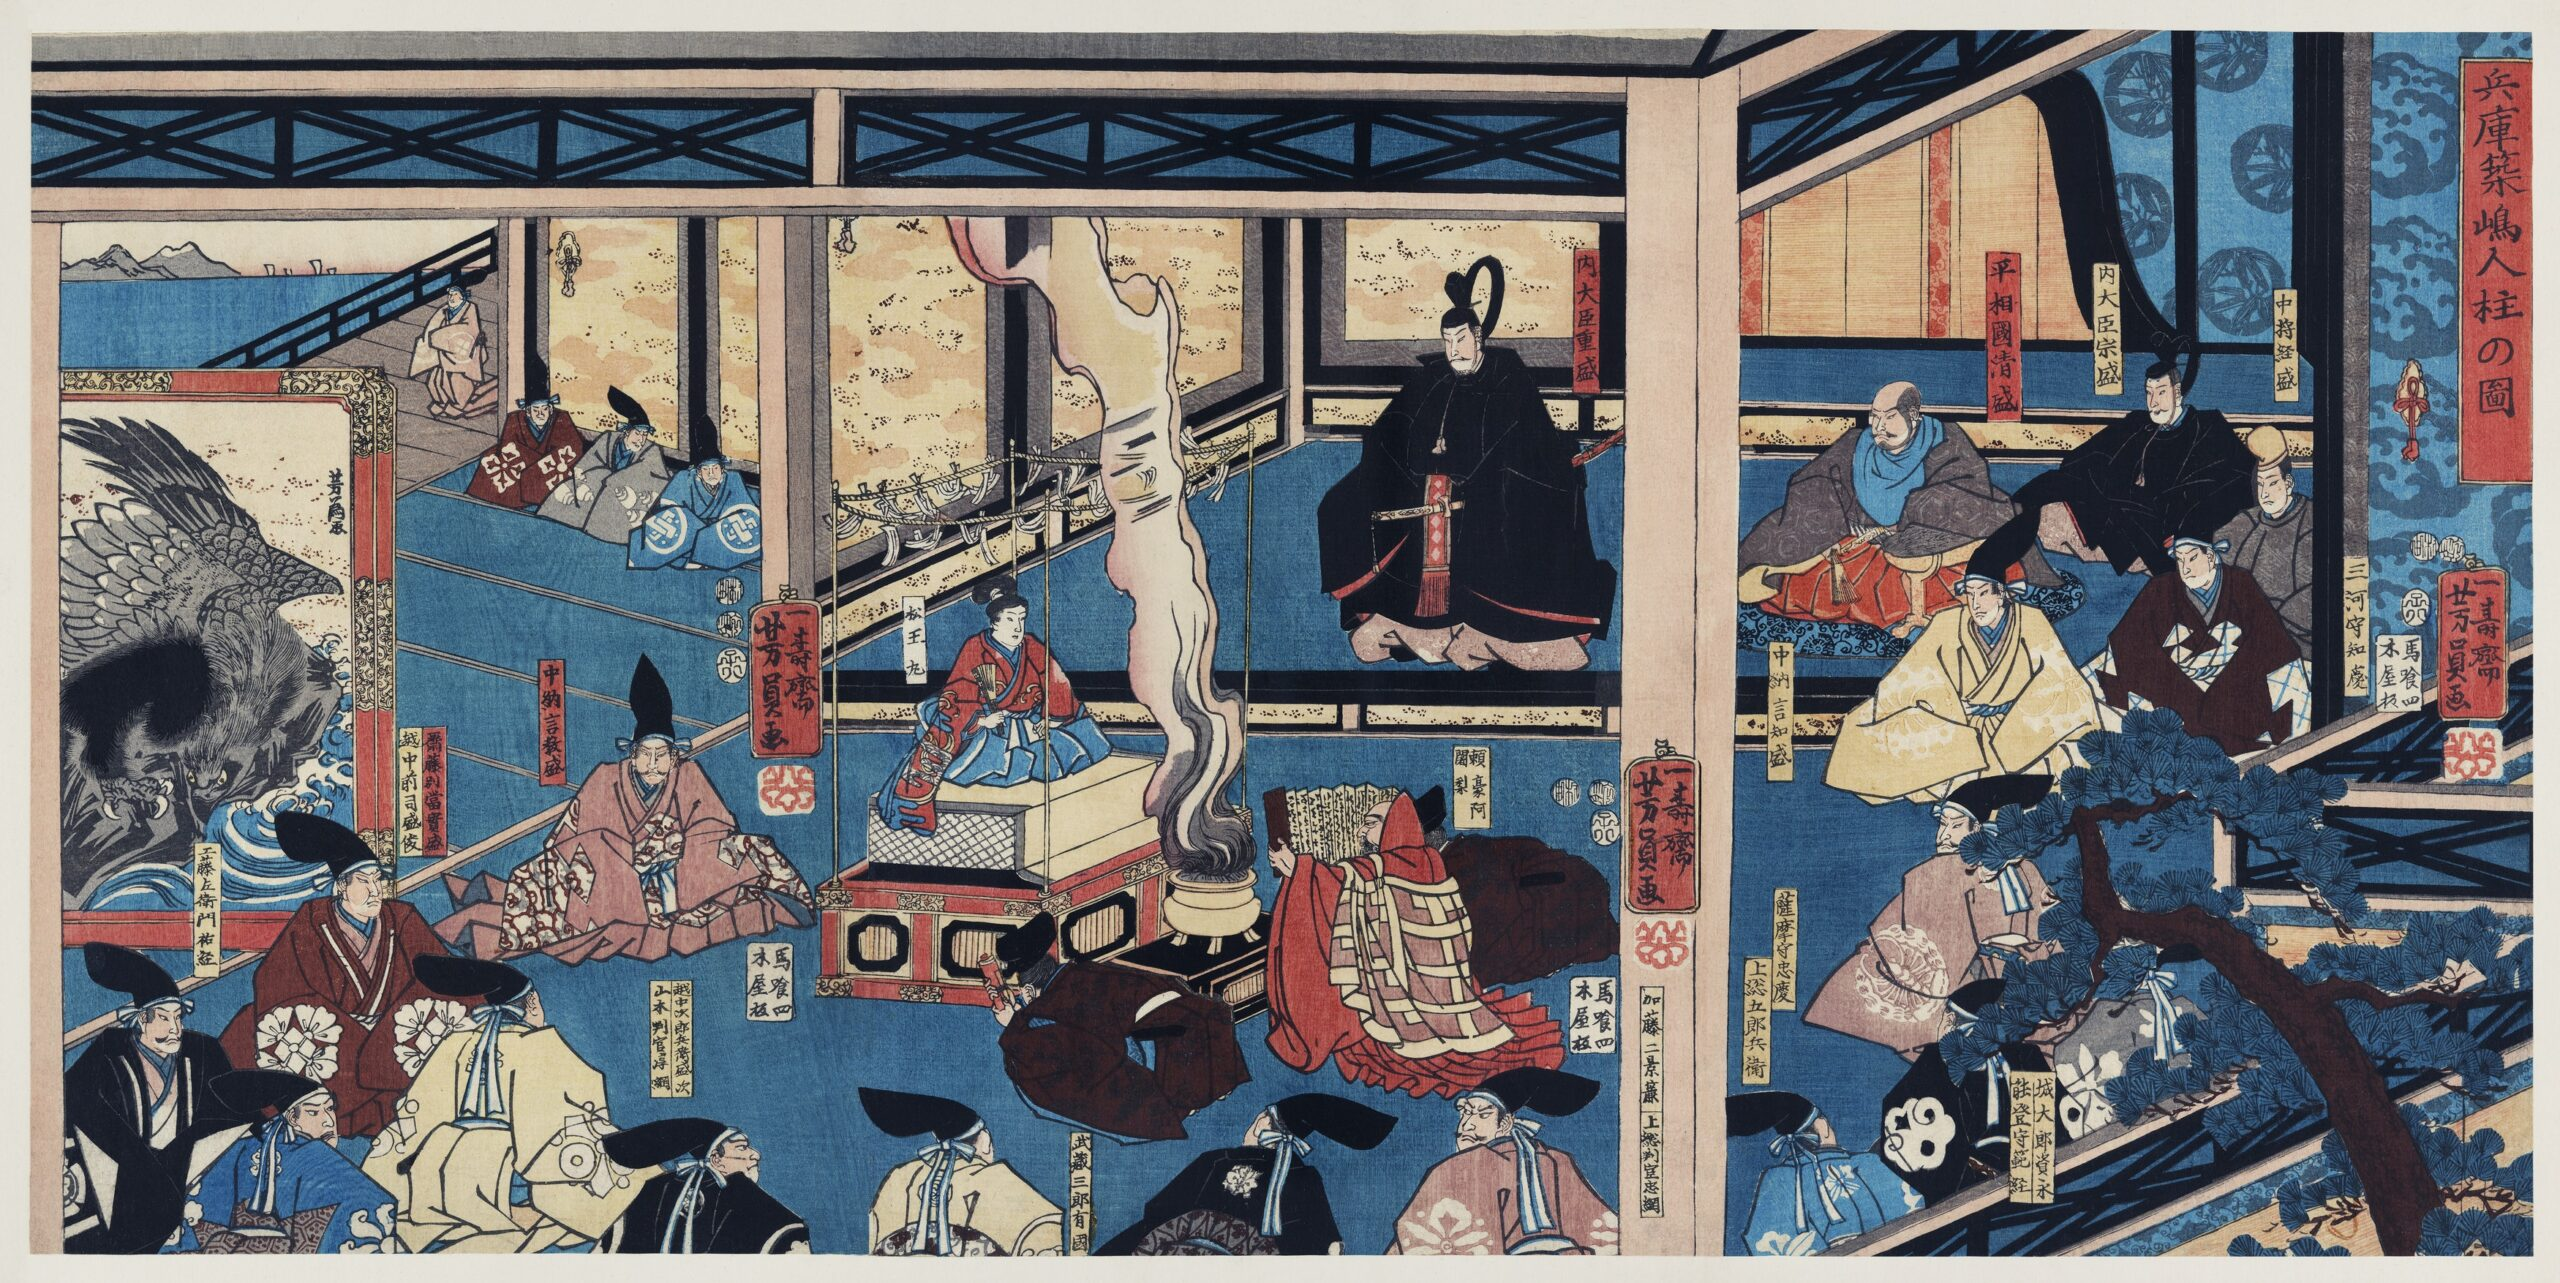 Hyogo Chikuto Hitobashira no zu by Utagawa Yoshikazu, published in 1852, a triptych of a man presenting a city plan to the emperor in the royal court along with ministers